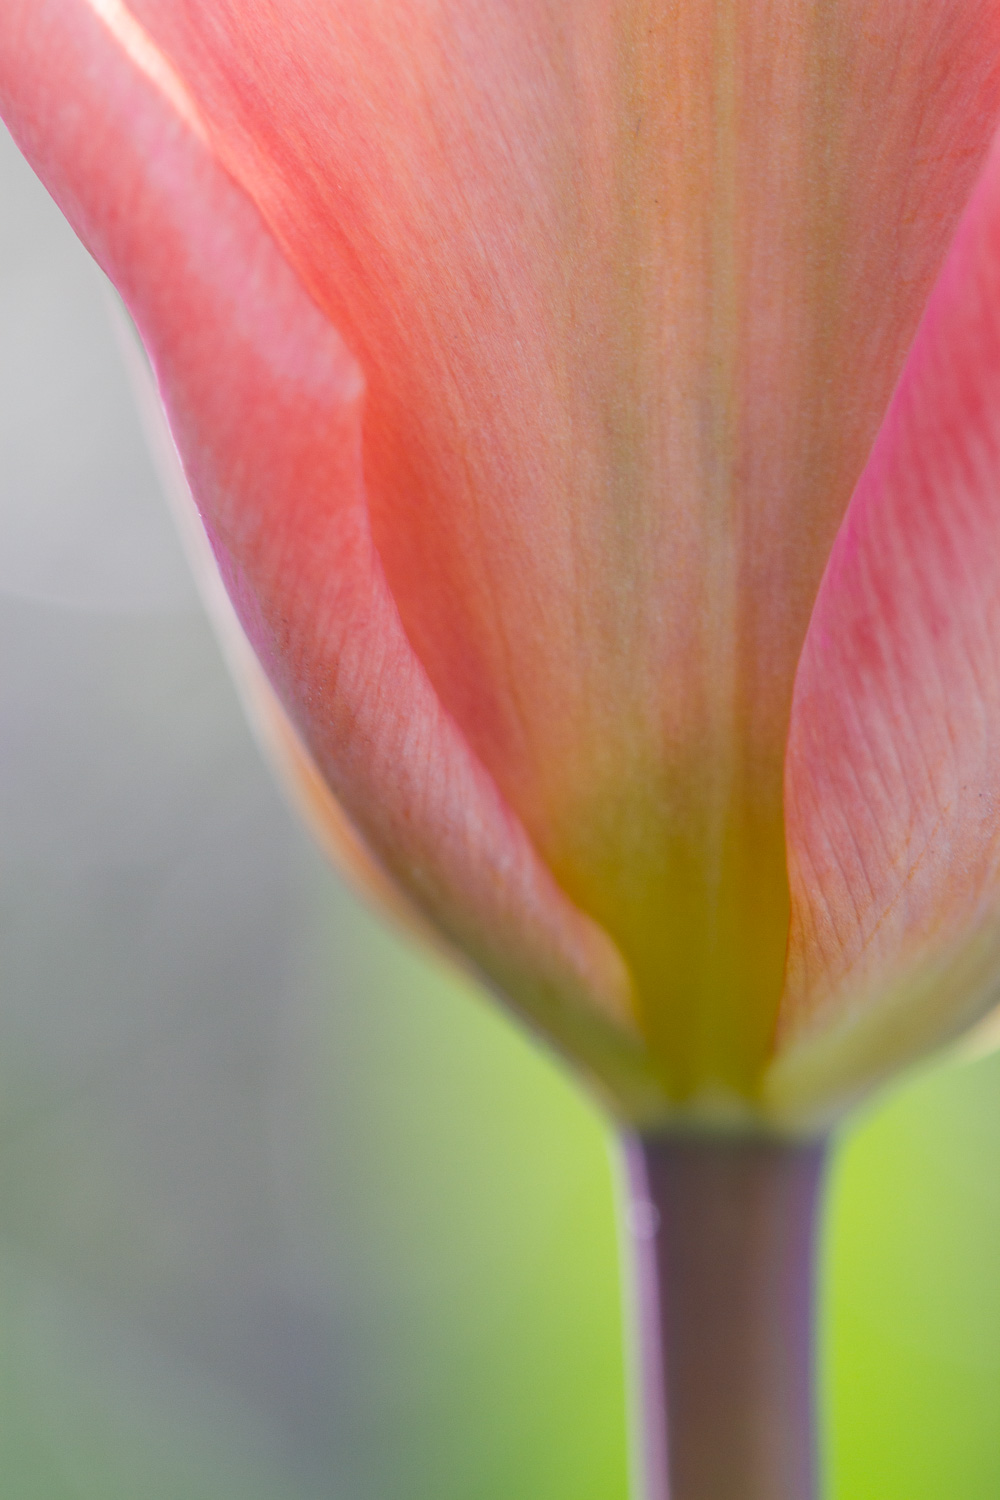 A Beginner's Guide to Stunning Close-Up Photography